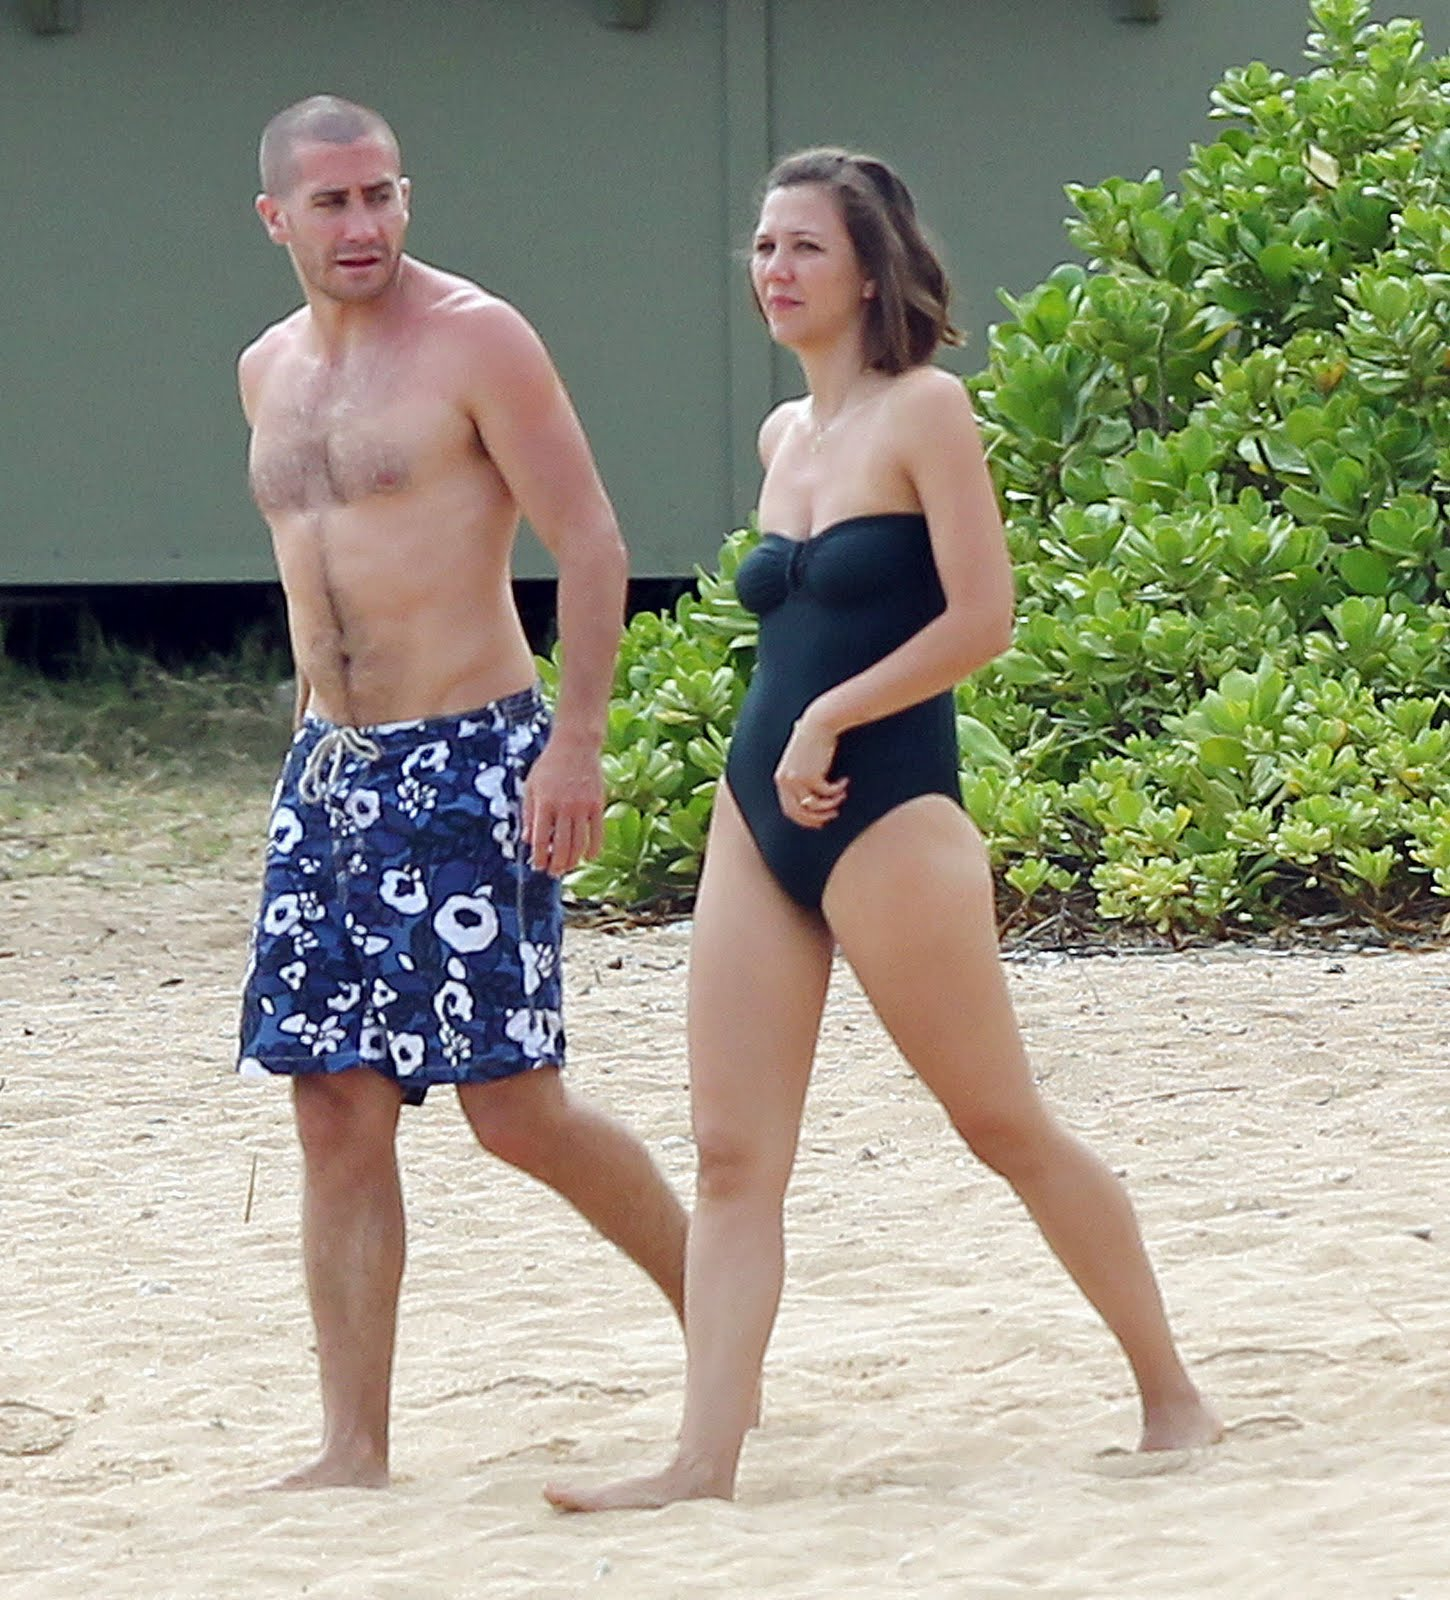 http://2.bp.blogspot.com/-TCeul_7JDbA/TjX7_GYPDgI/AAAAAAAAAkE/S-nDxiksfpI/s1600/maggie-and-jake-gyllenhaal-at-the-beach.jpg